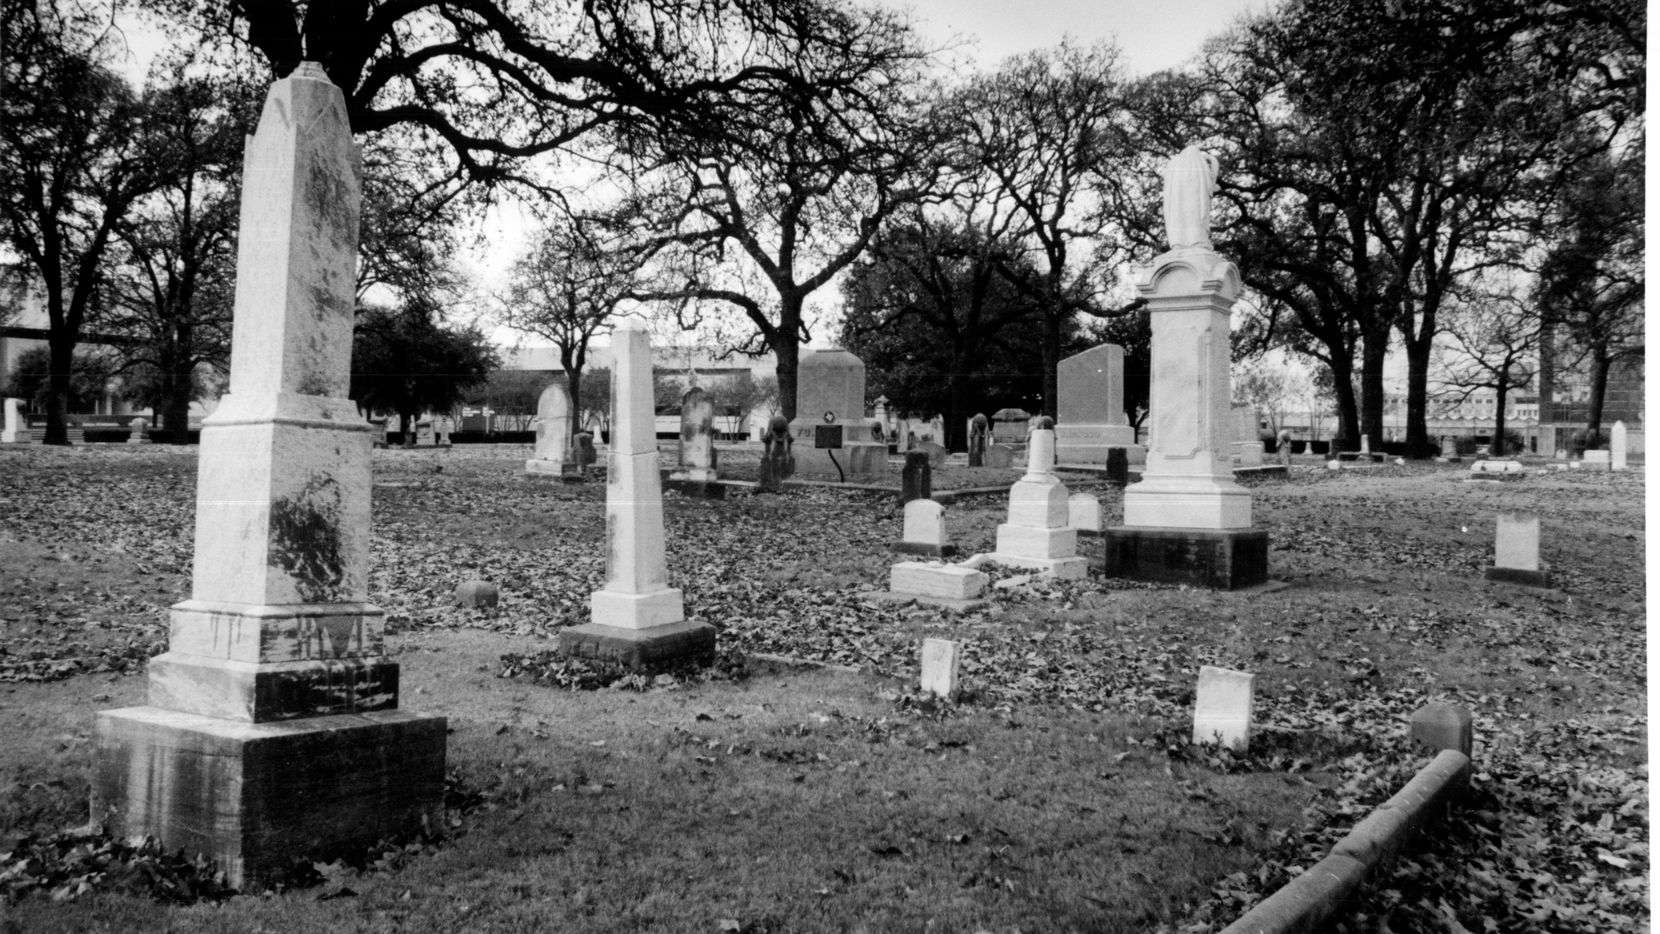 Dec. 29, 1989 -- Pioneer Park Cemetery, at Akard and Marilla streets, location of Eleanor Russell's grave